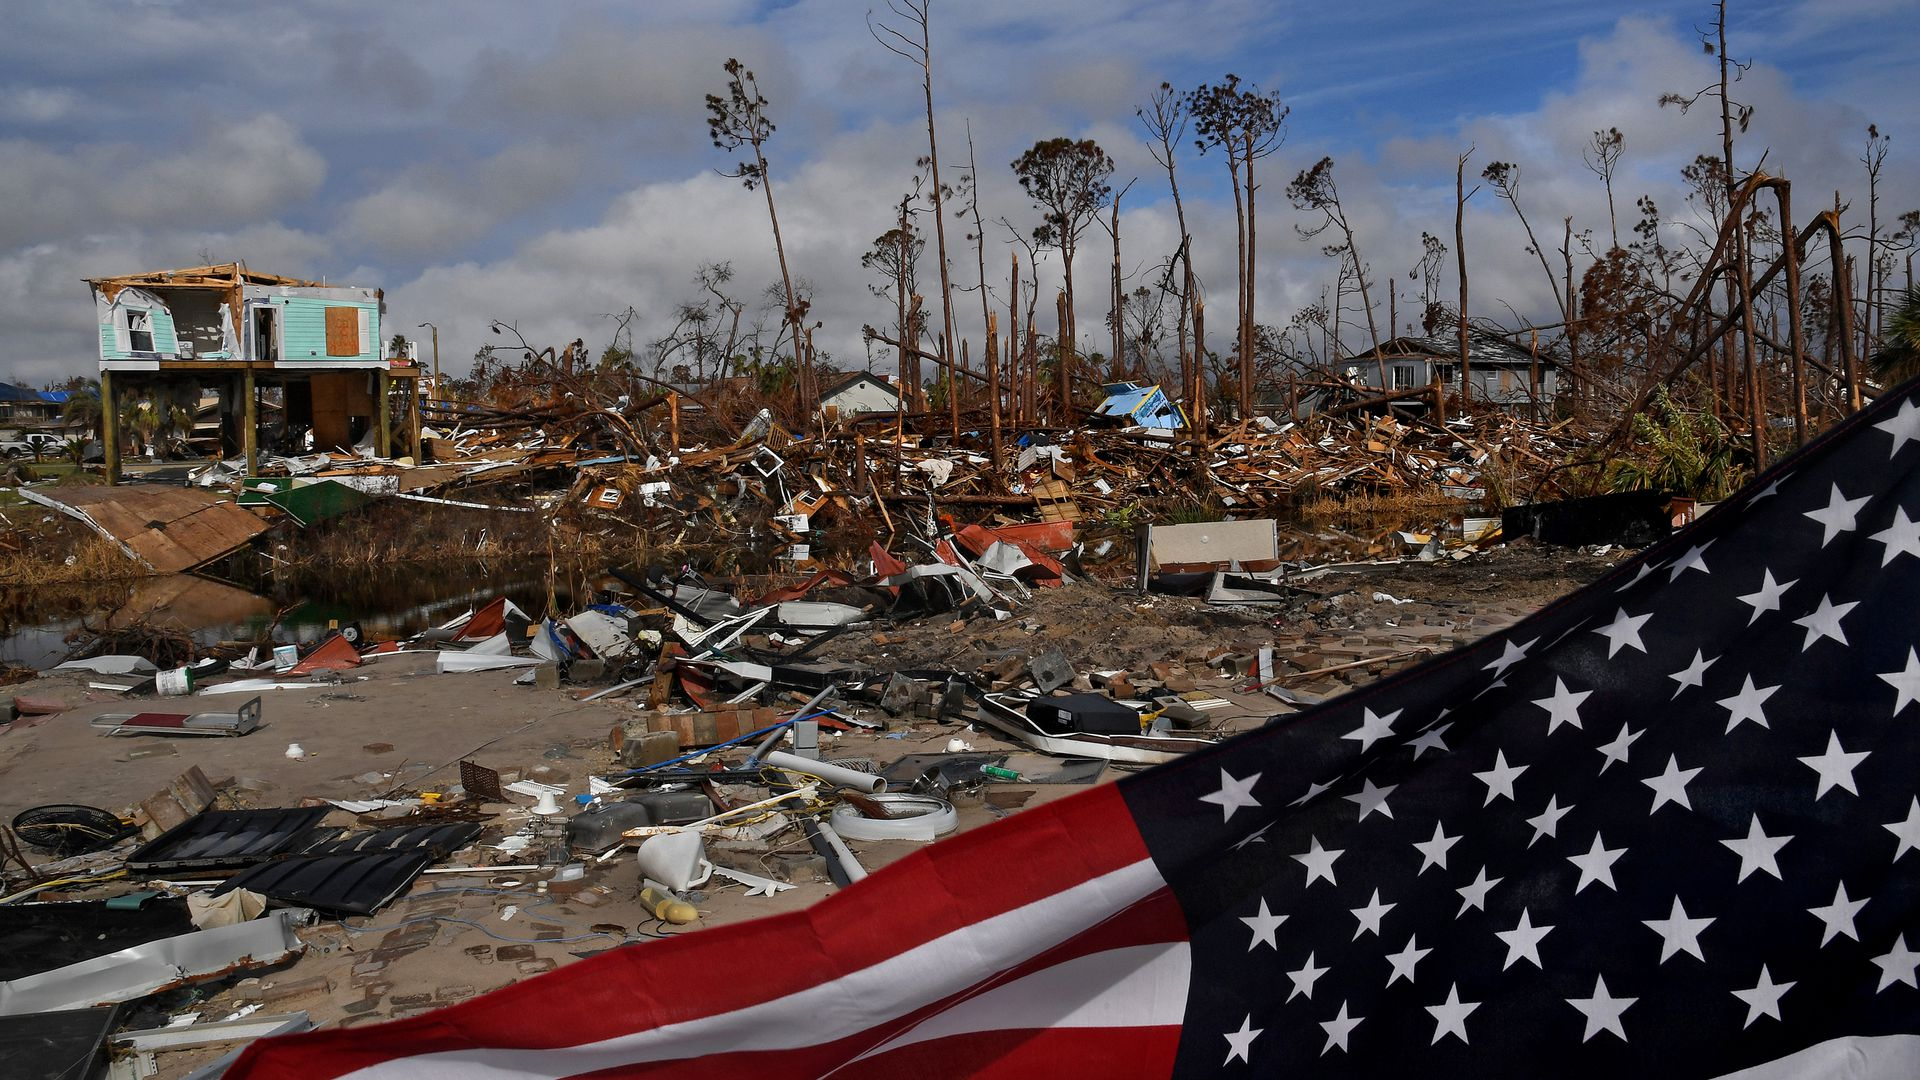 First Hurricane Michael hammered the Panhandle. Now survivors fear fires, floods.